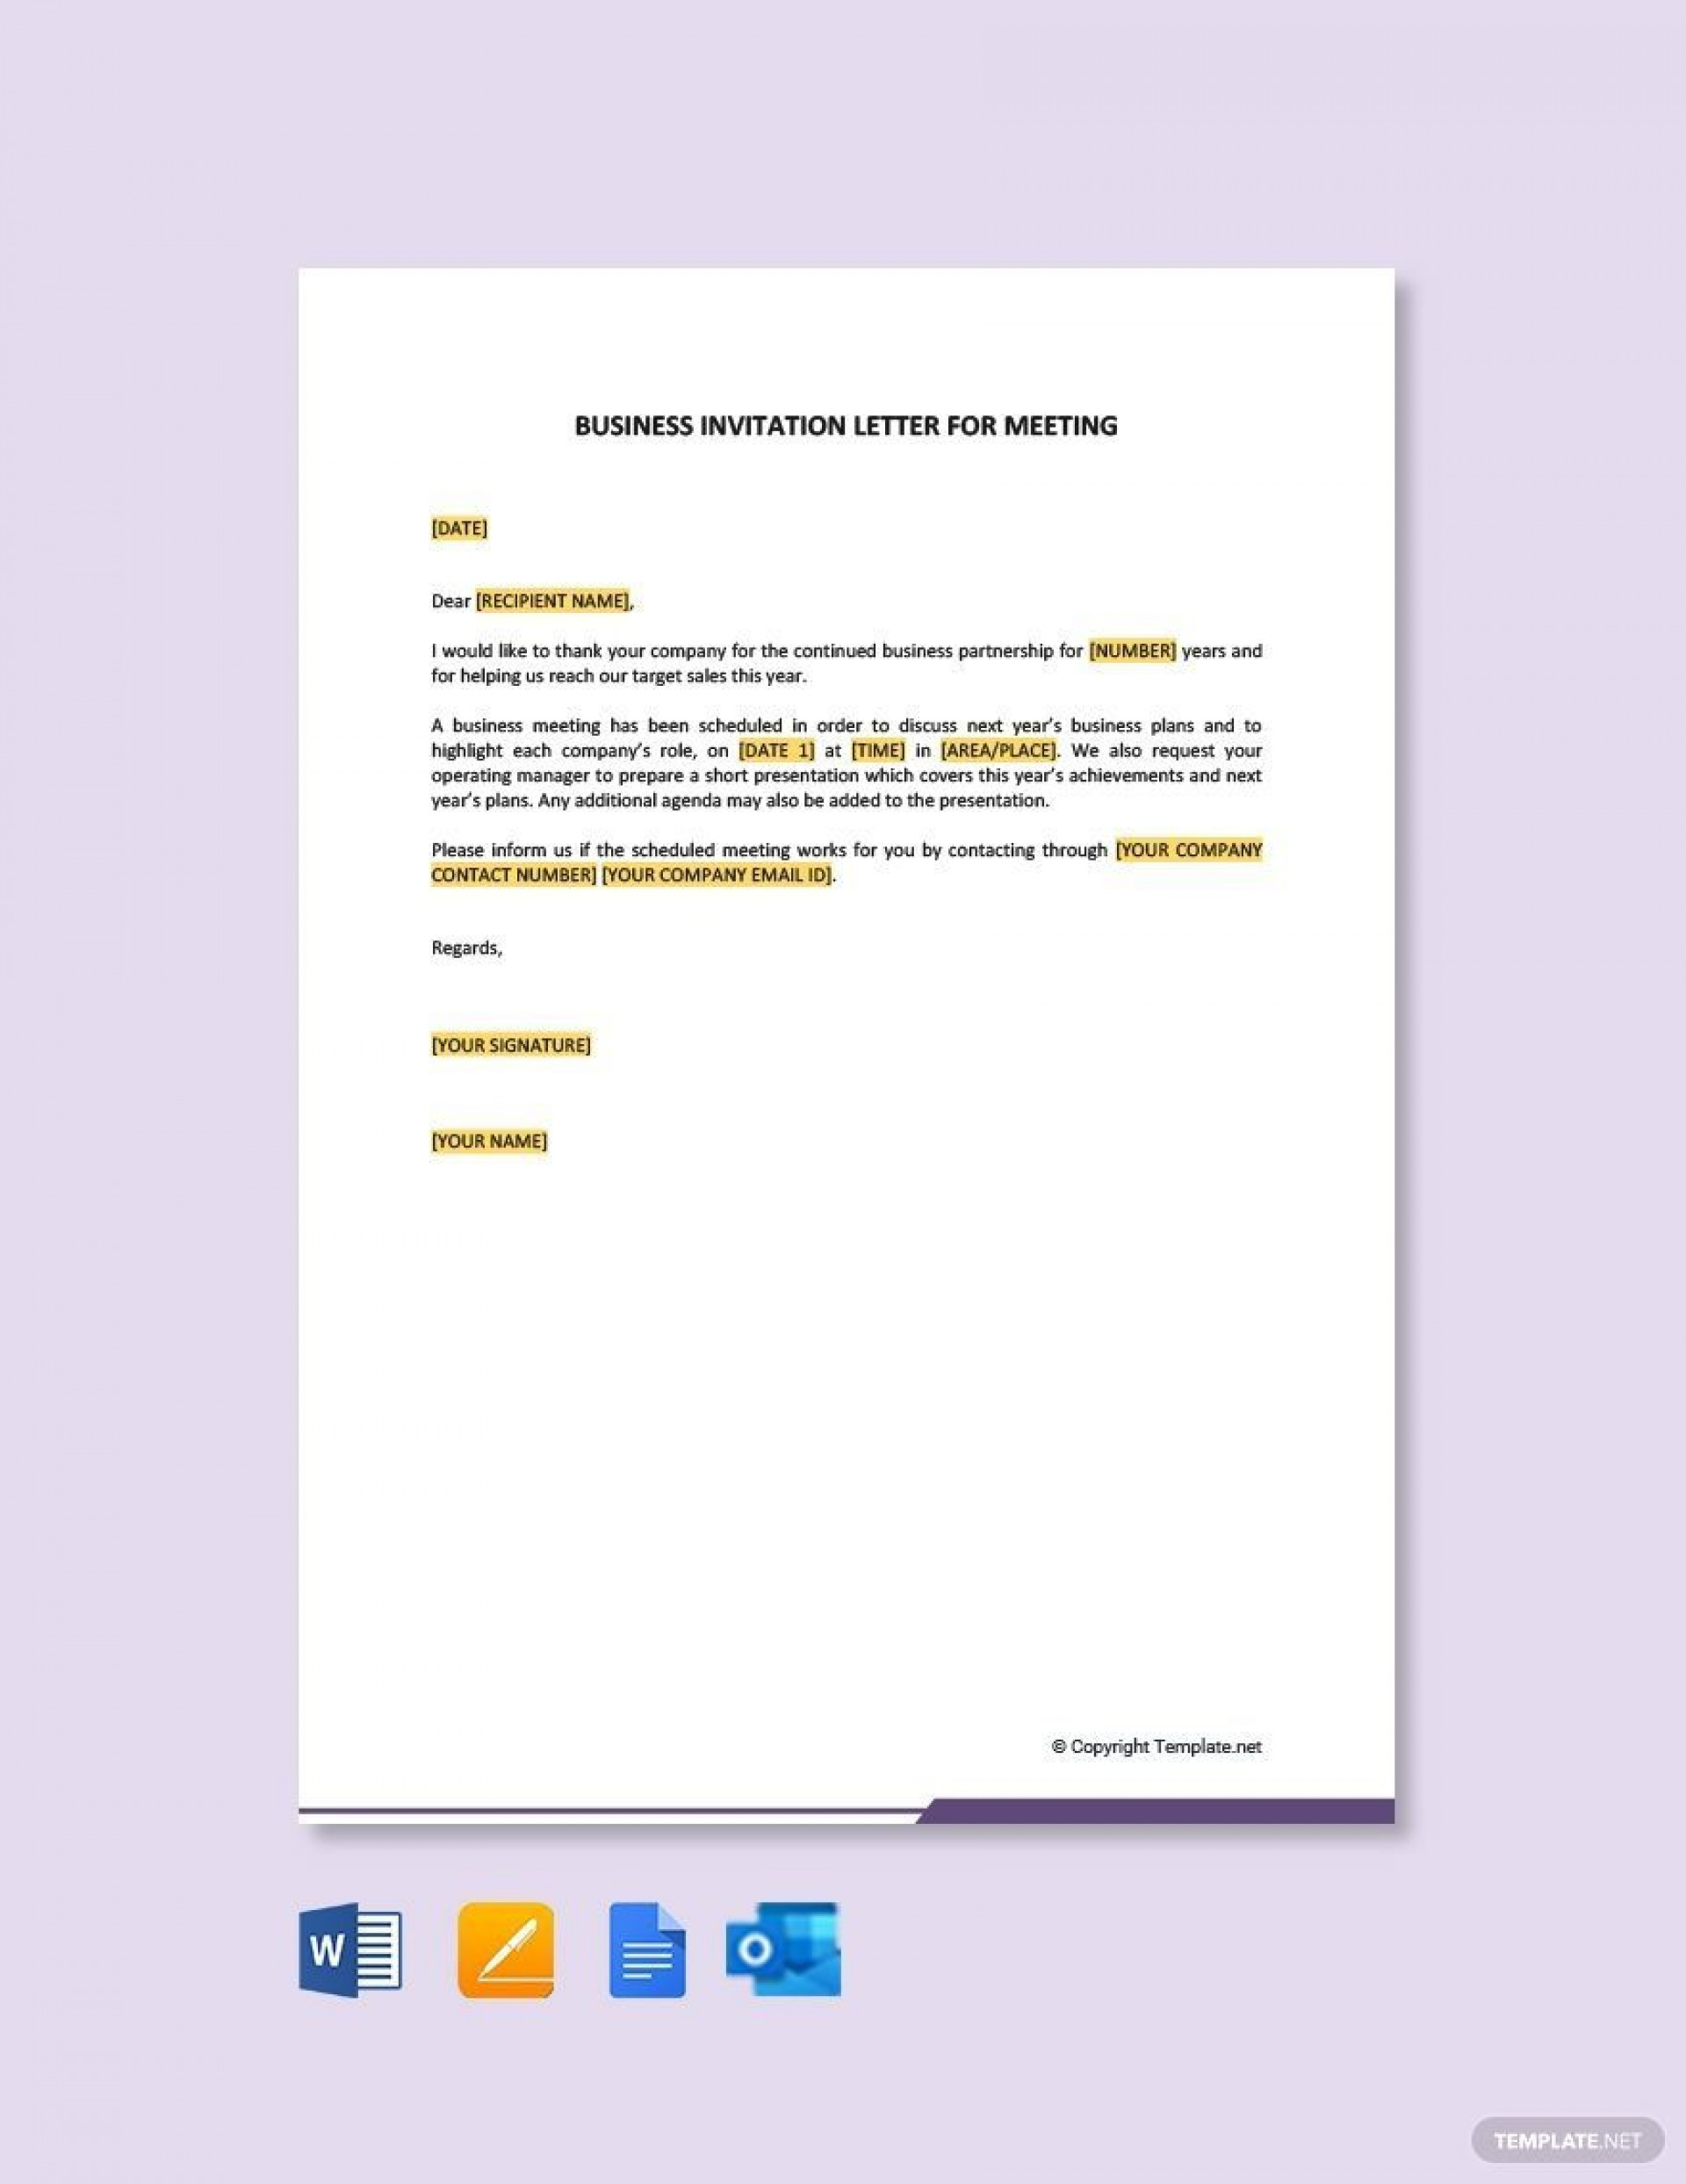 005 Exceptional Free Busines Invitation Template For Word High Def 1920